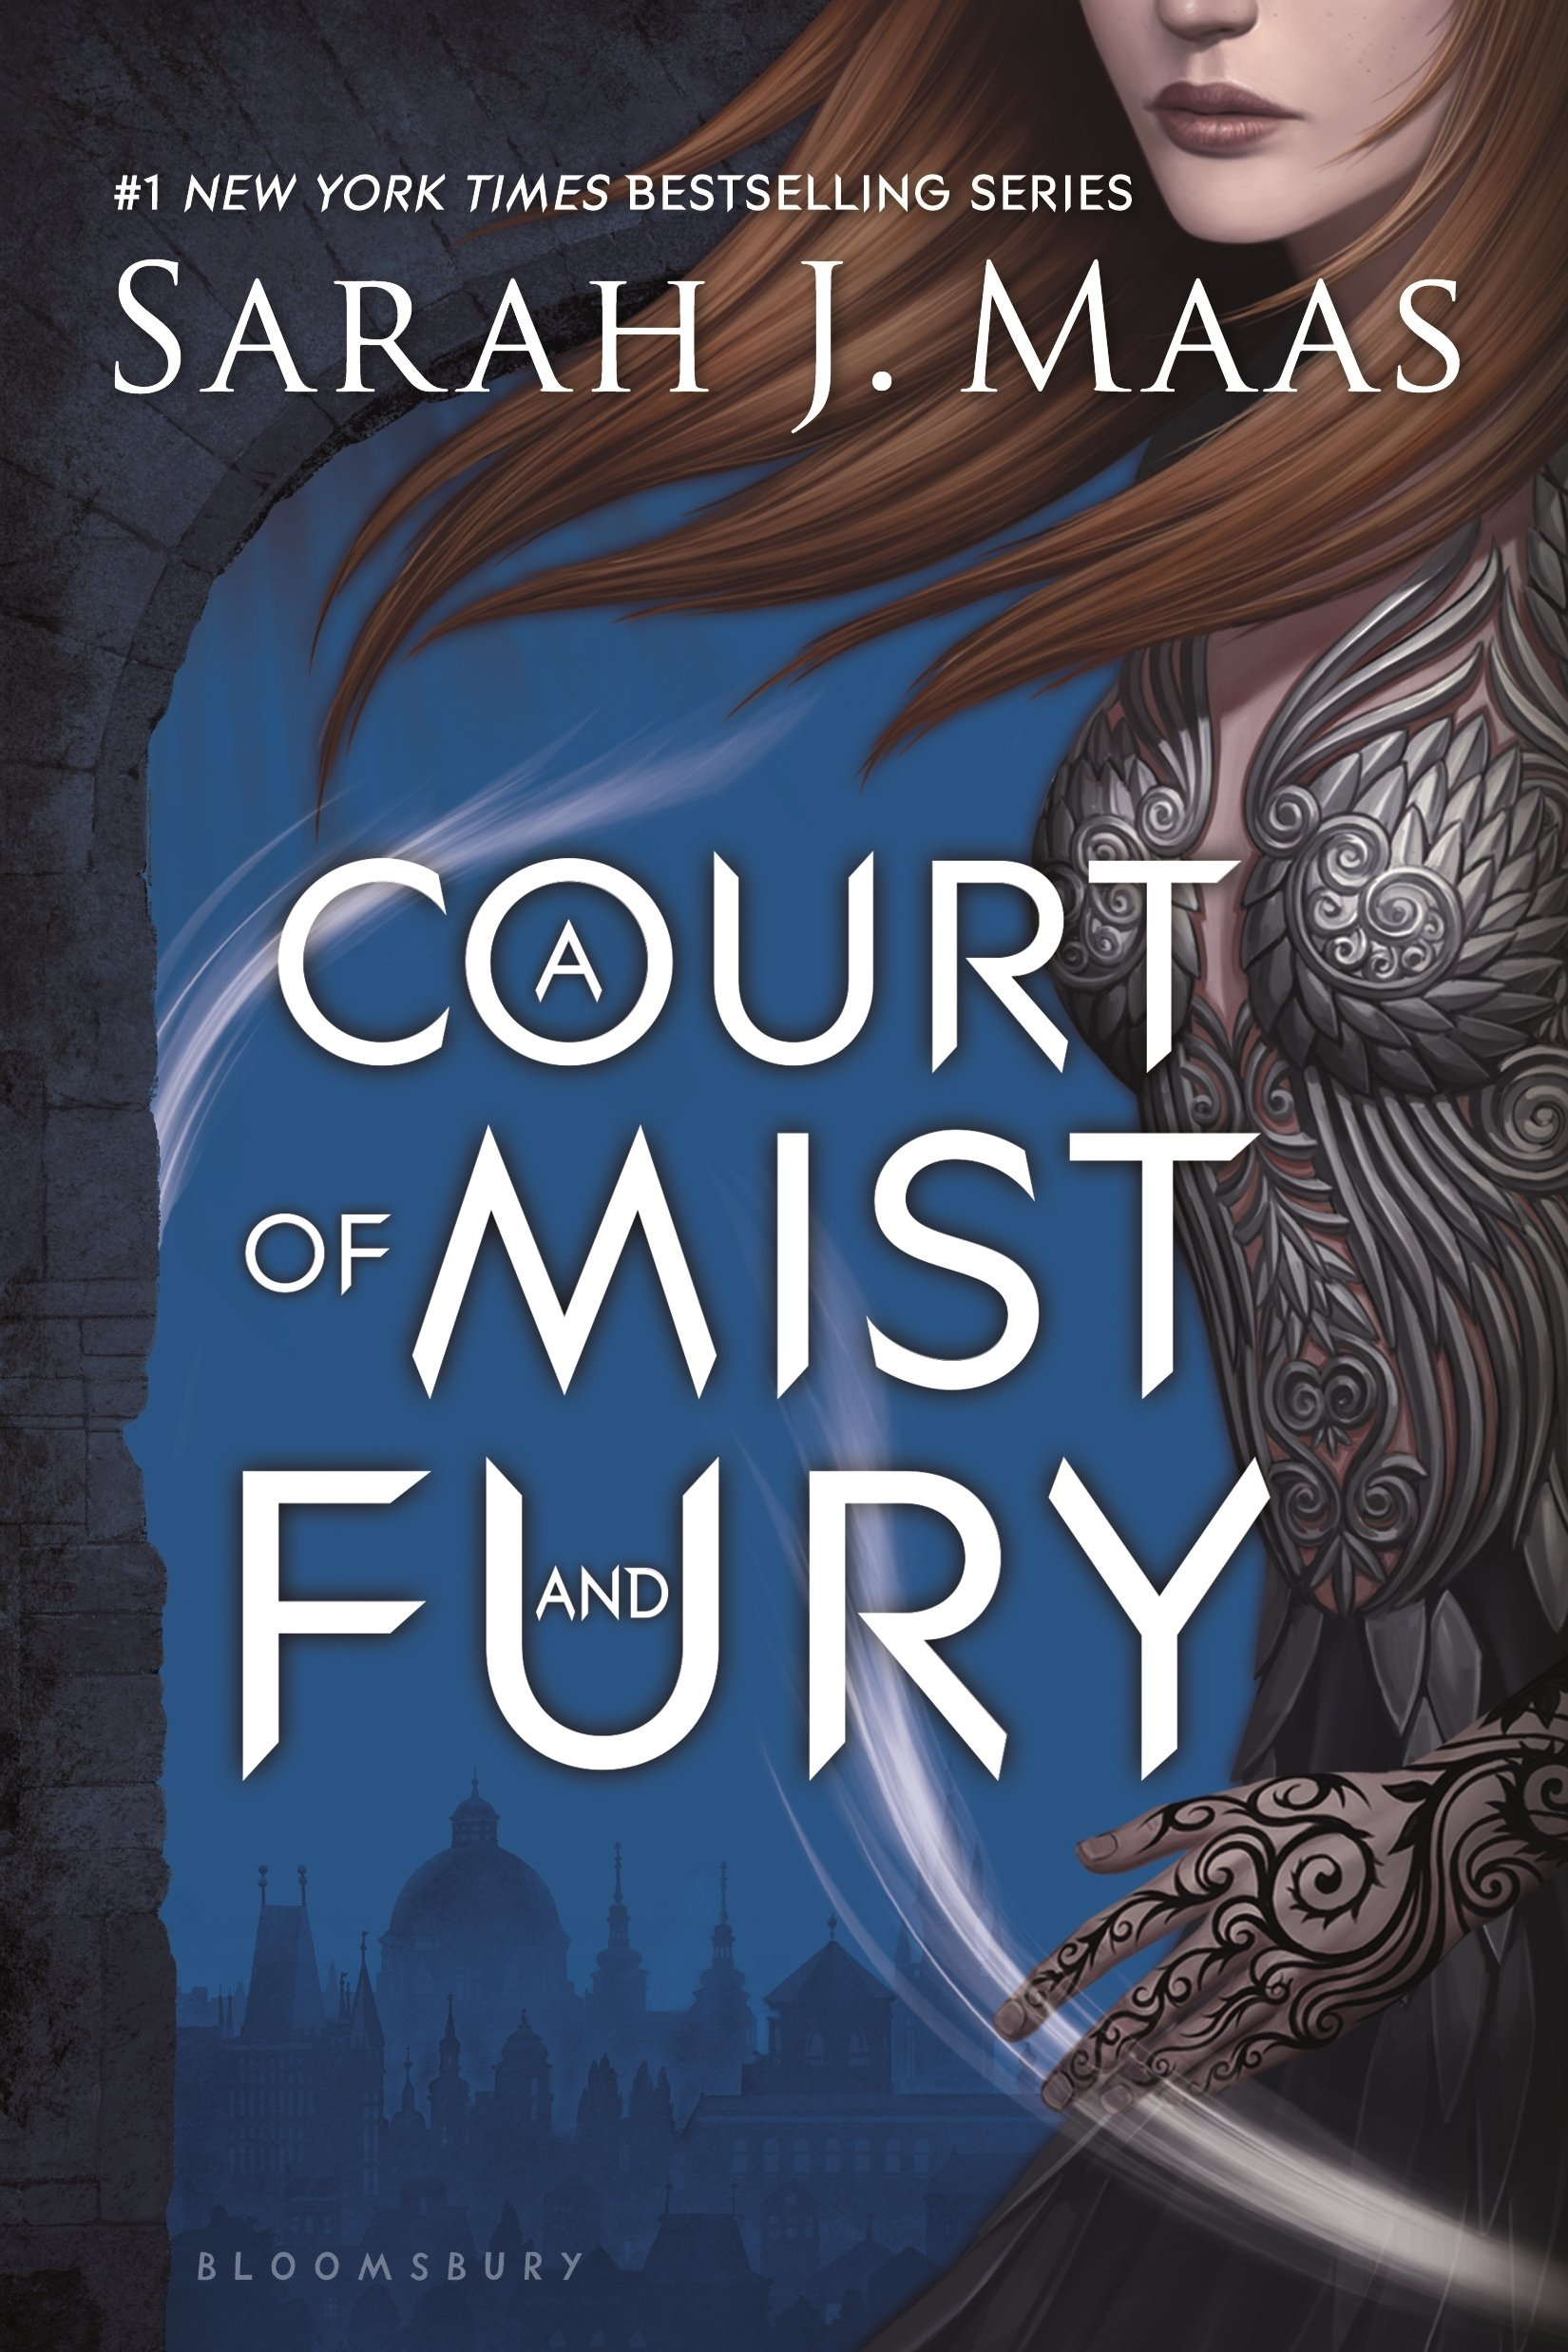 Amazon.com: A Court of Mist and Fury (A Court of Thorns and Roses ...